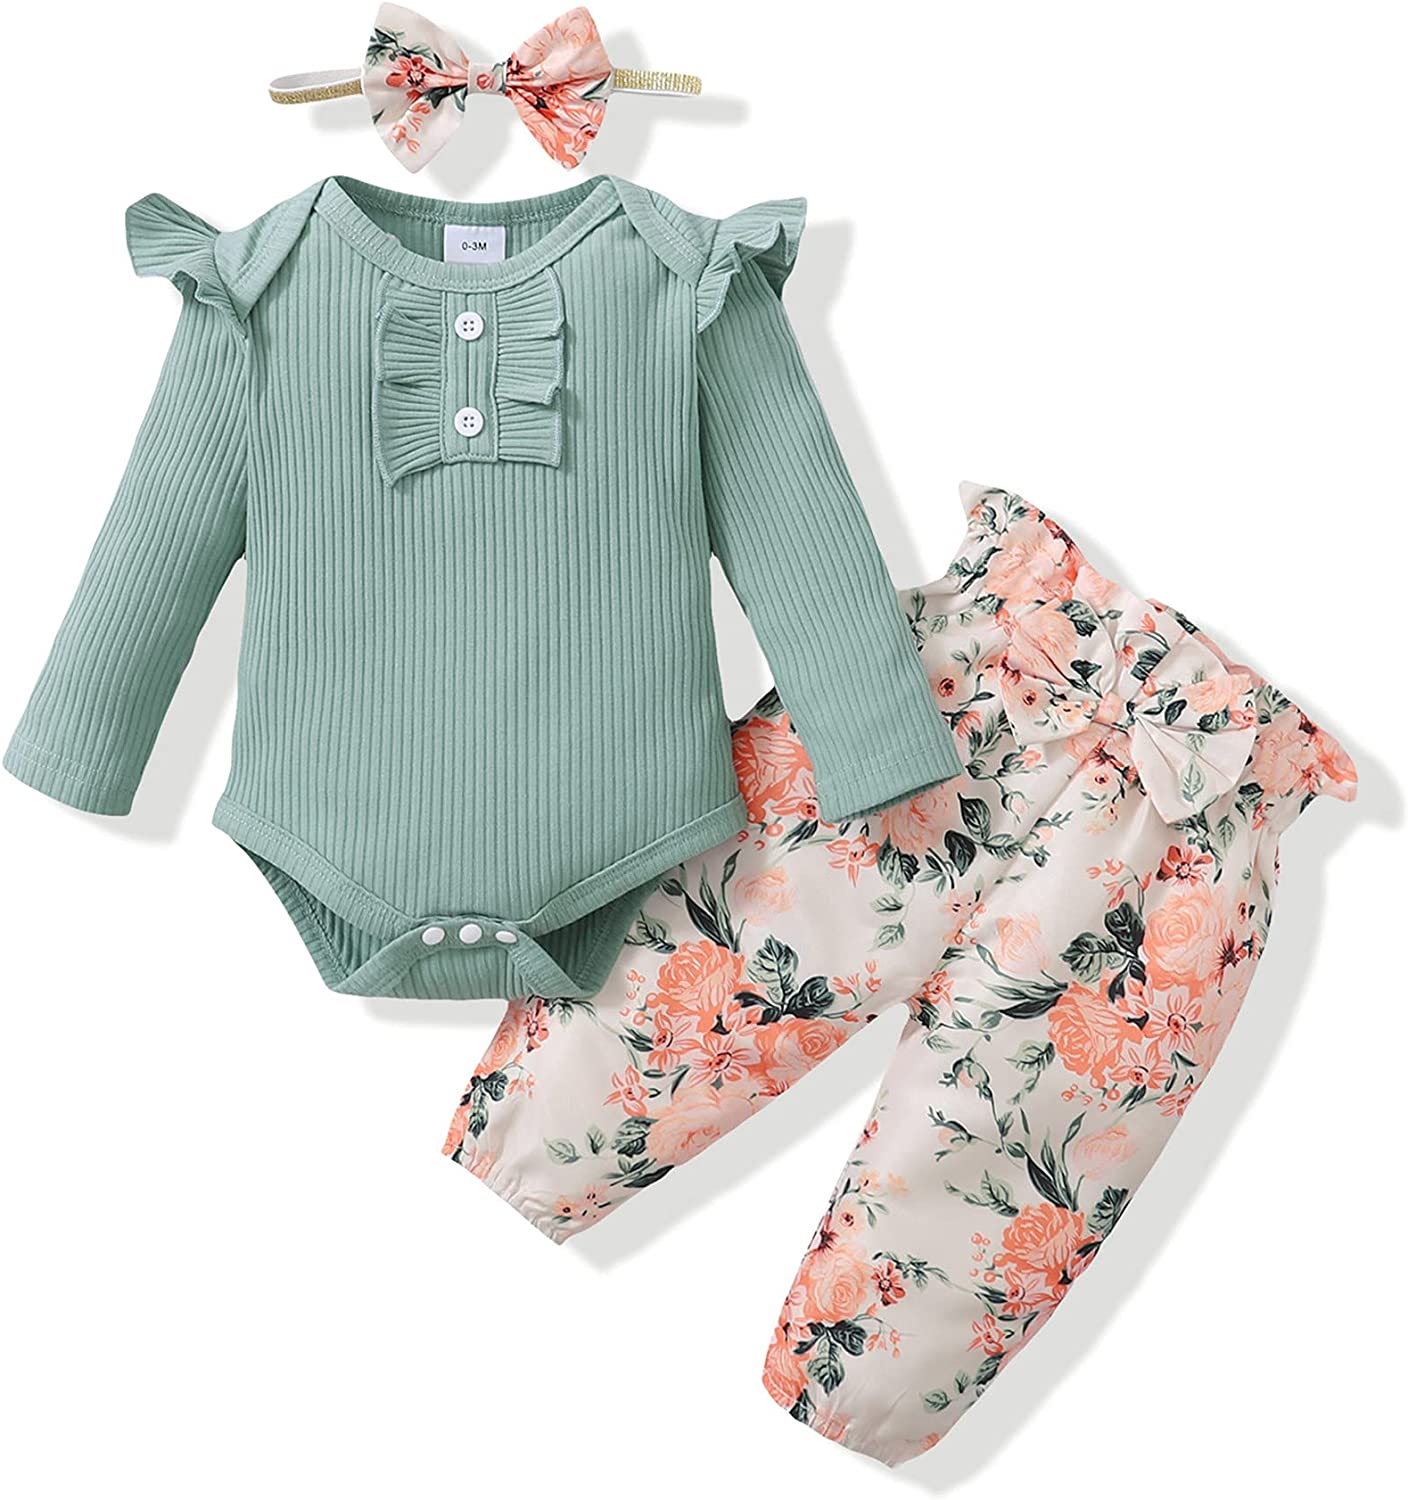 Newborn Infant Baby Girl Clothes Romper Onesie Pants Set Floral Outfits Cotton Baby Clothes for Girls